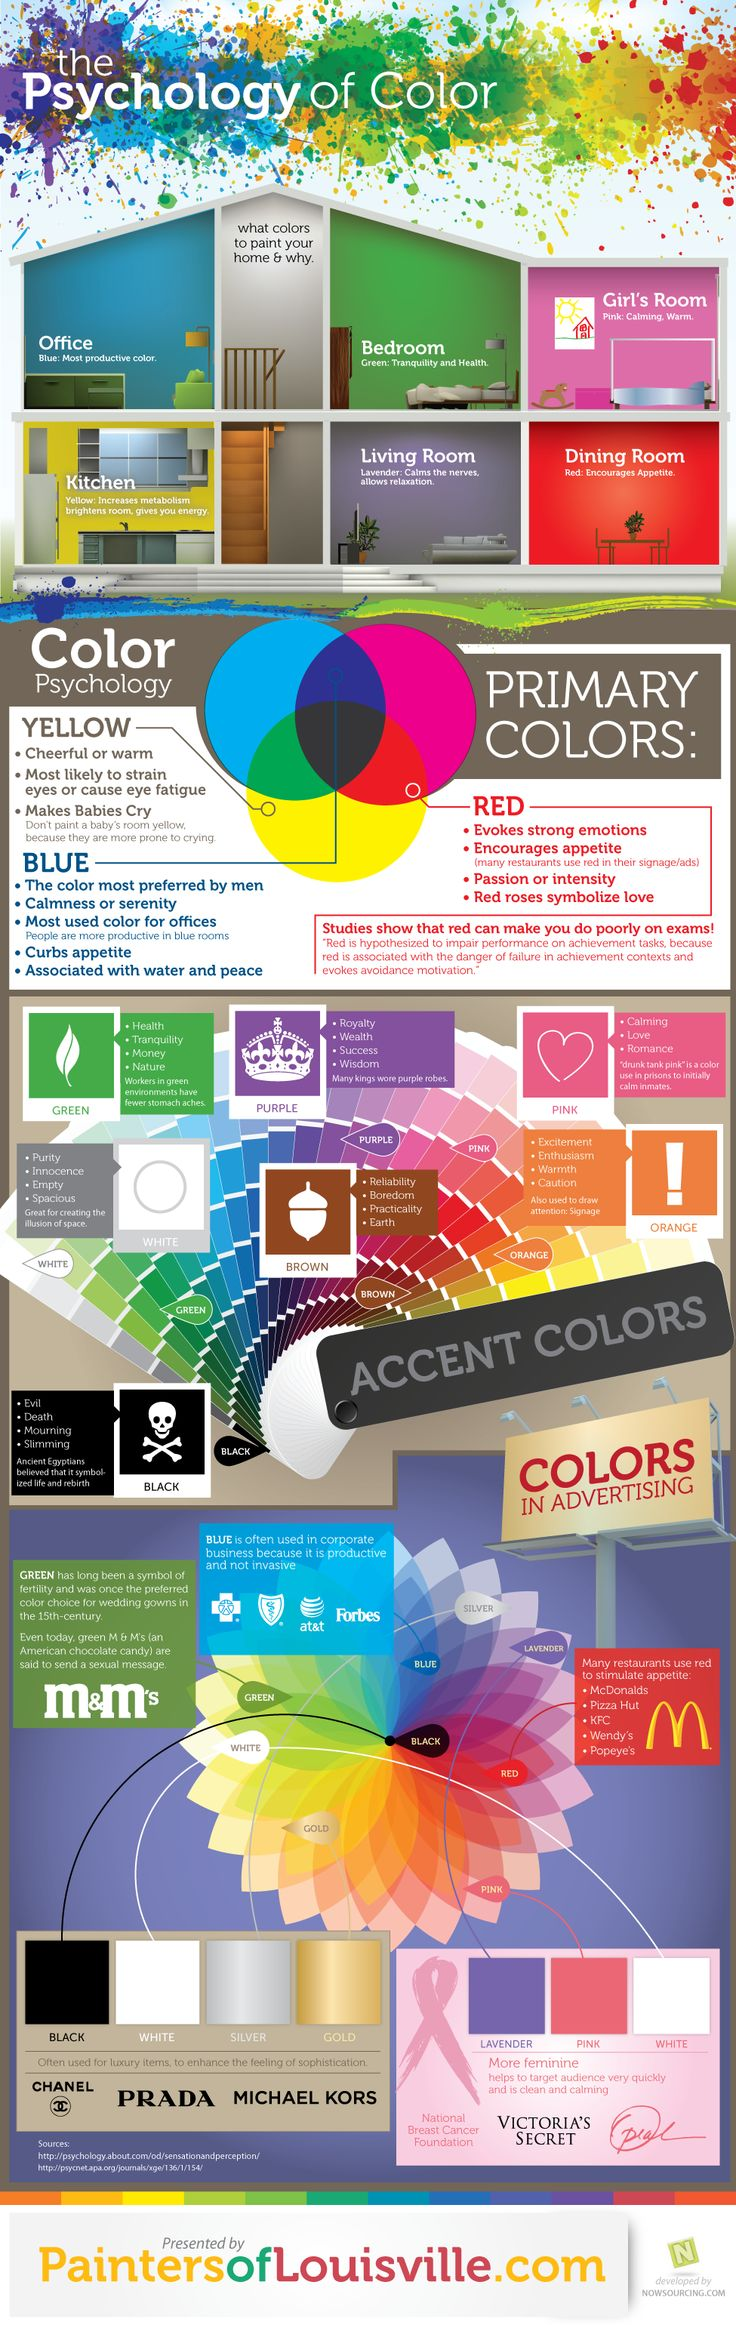 From the colors chosen for the home to those in advertisements -- it's The Psychology of Color infographic found on National Geographic Daily News